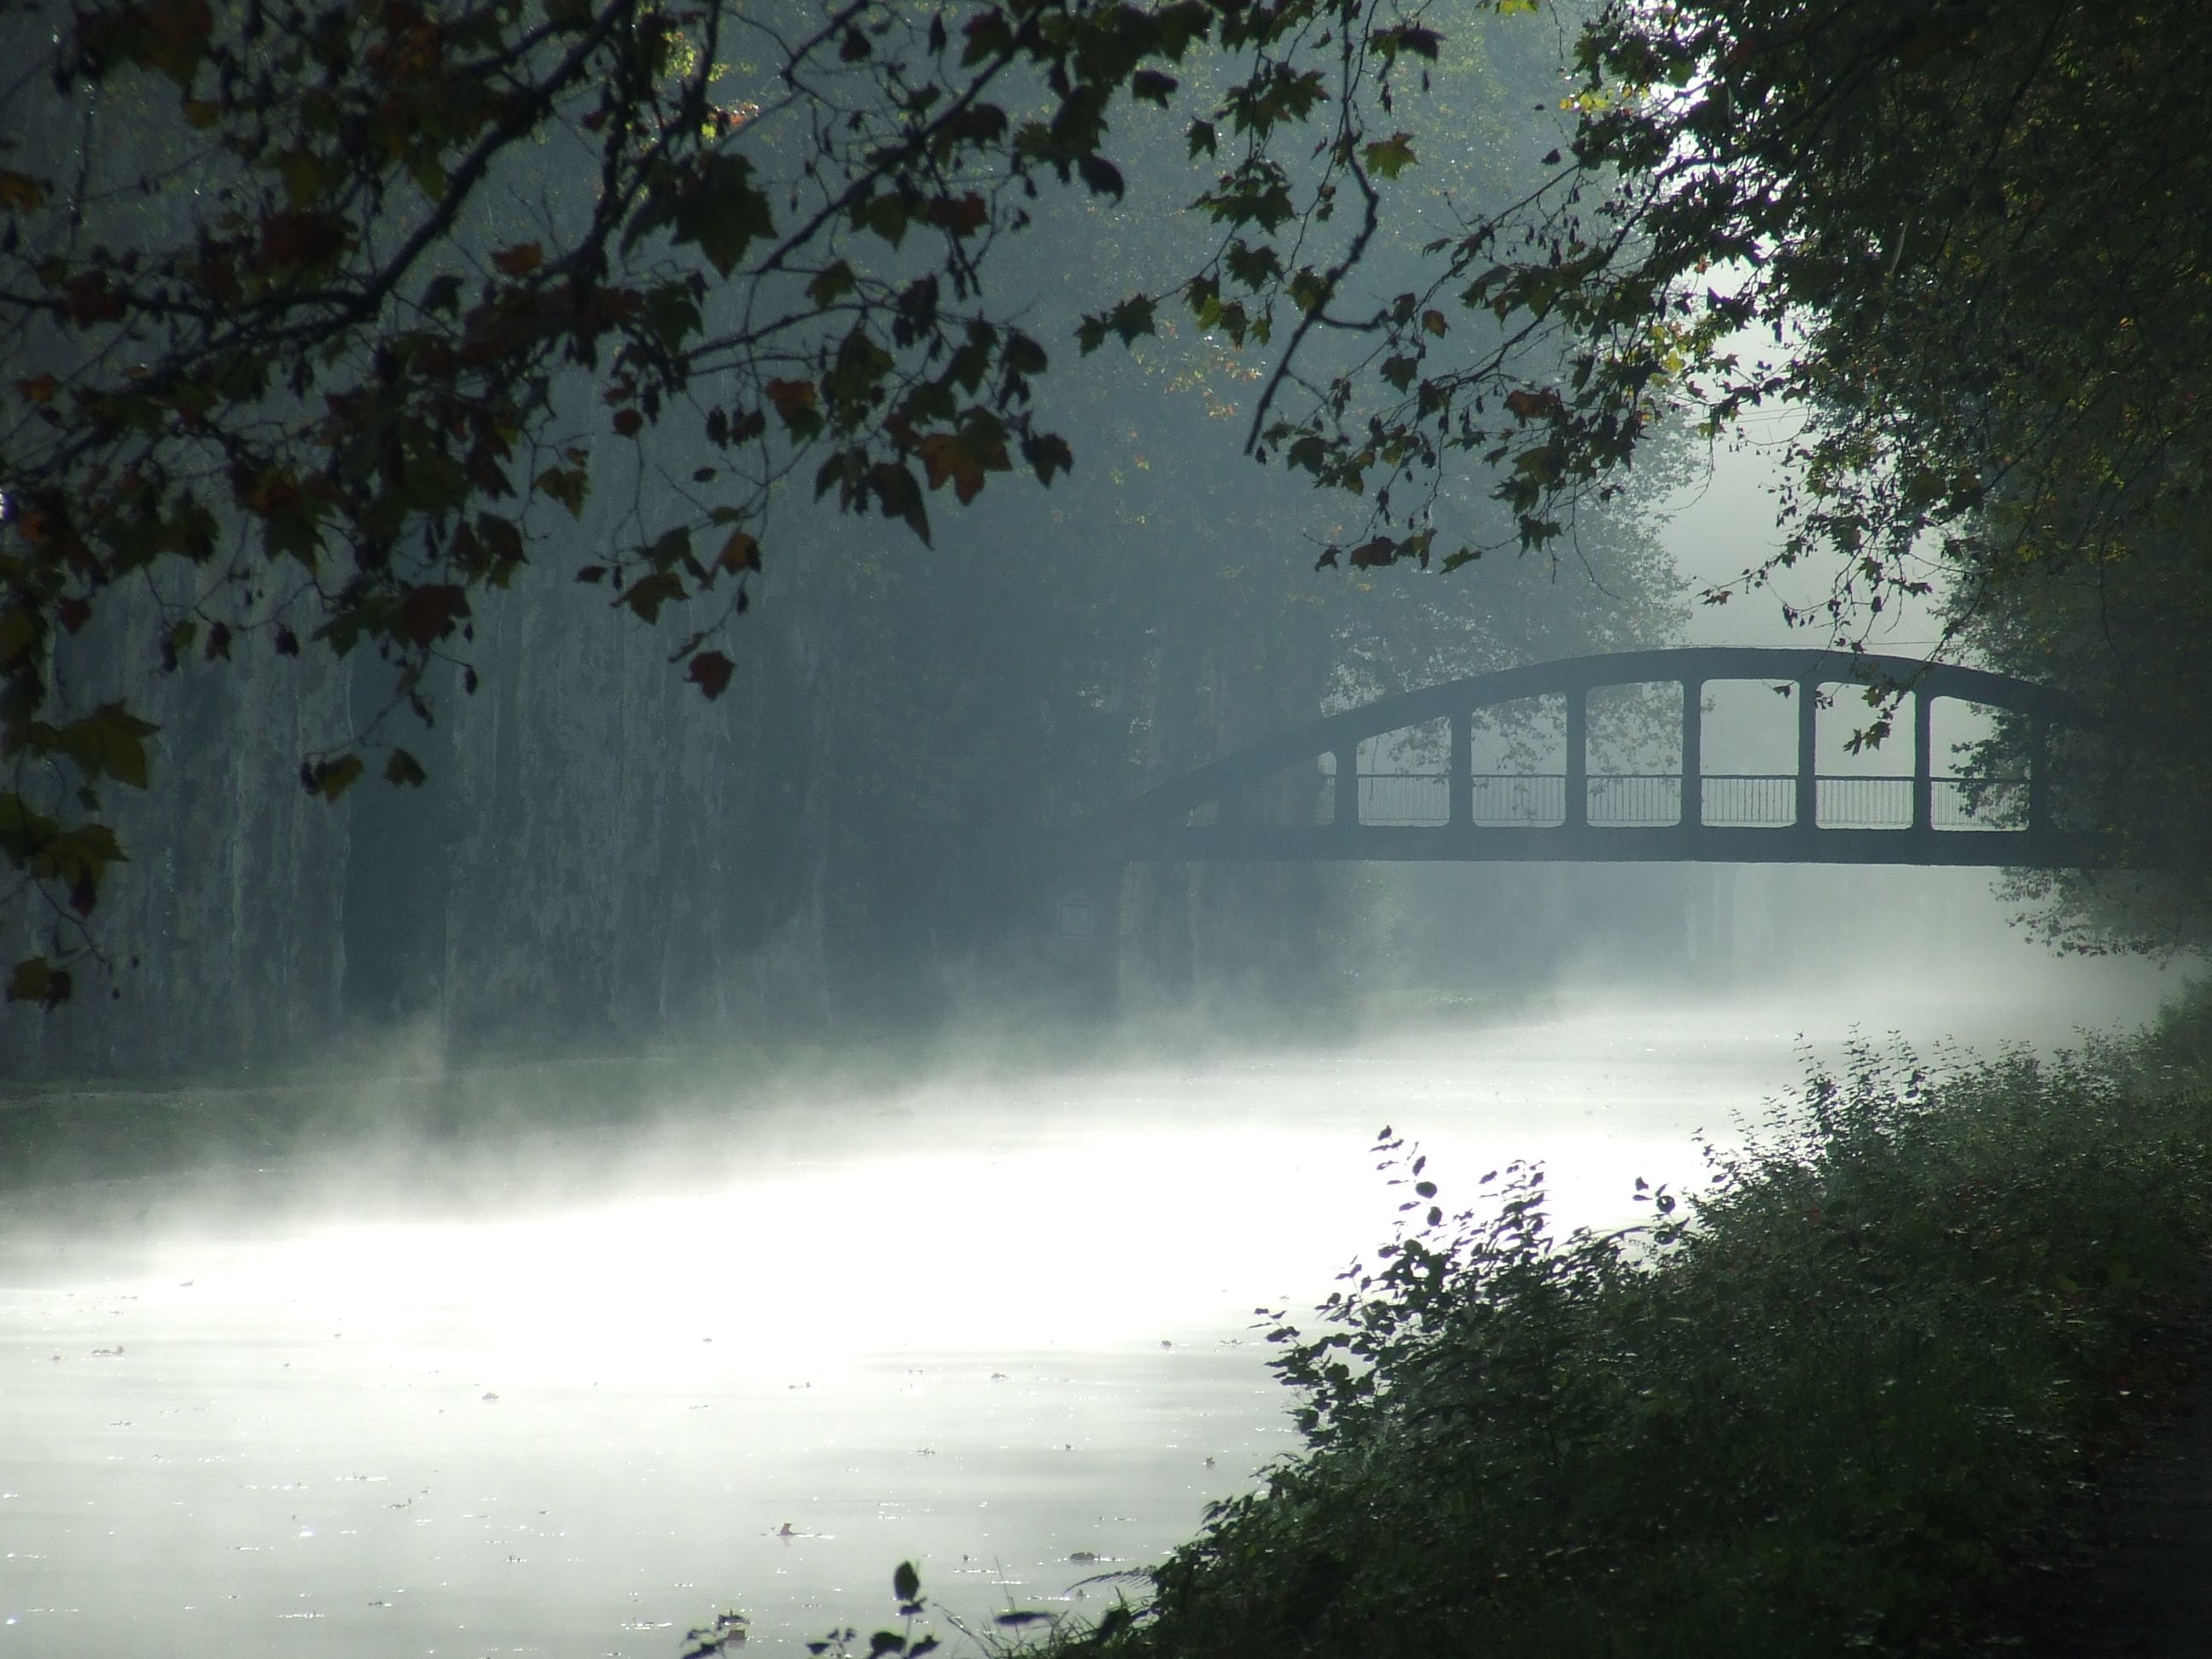 Early morning, mid-October 2012 - misty canal